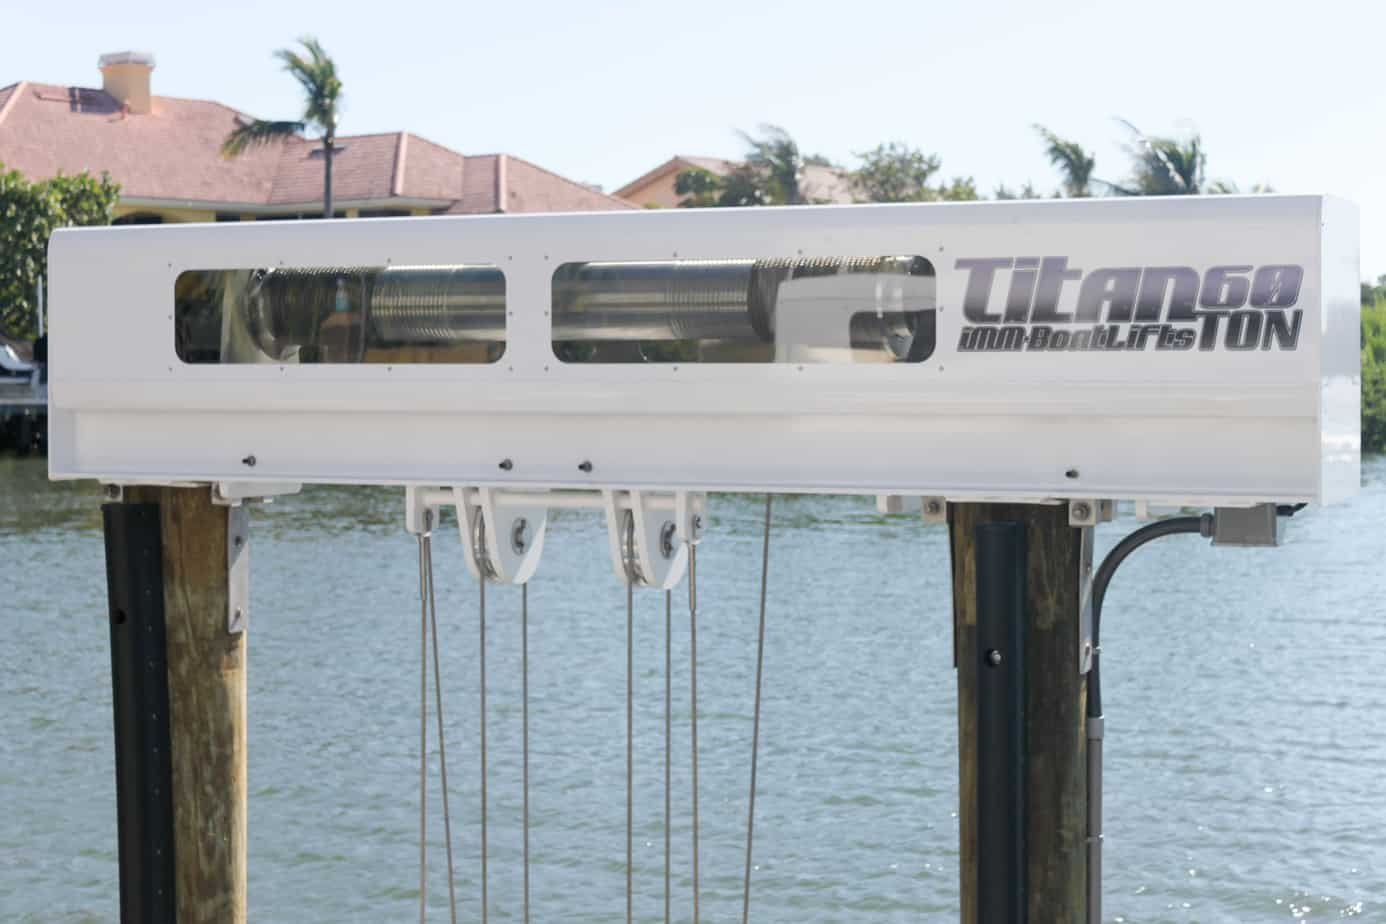 Can Boat Lifts Increase the Value of Your Home? - image patented-technology-Titan-Beam on https://www.iqboatlifts.com